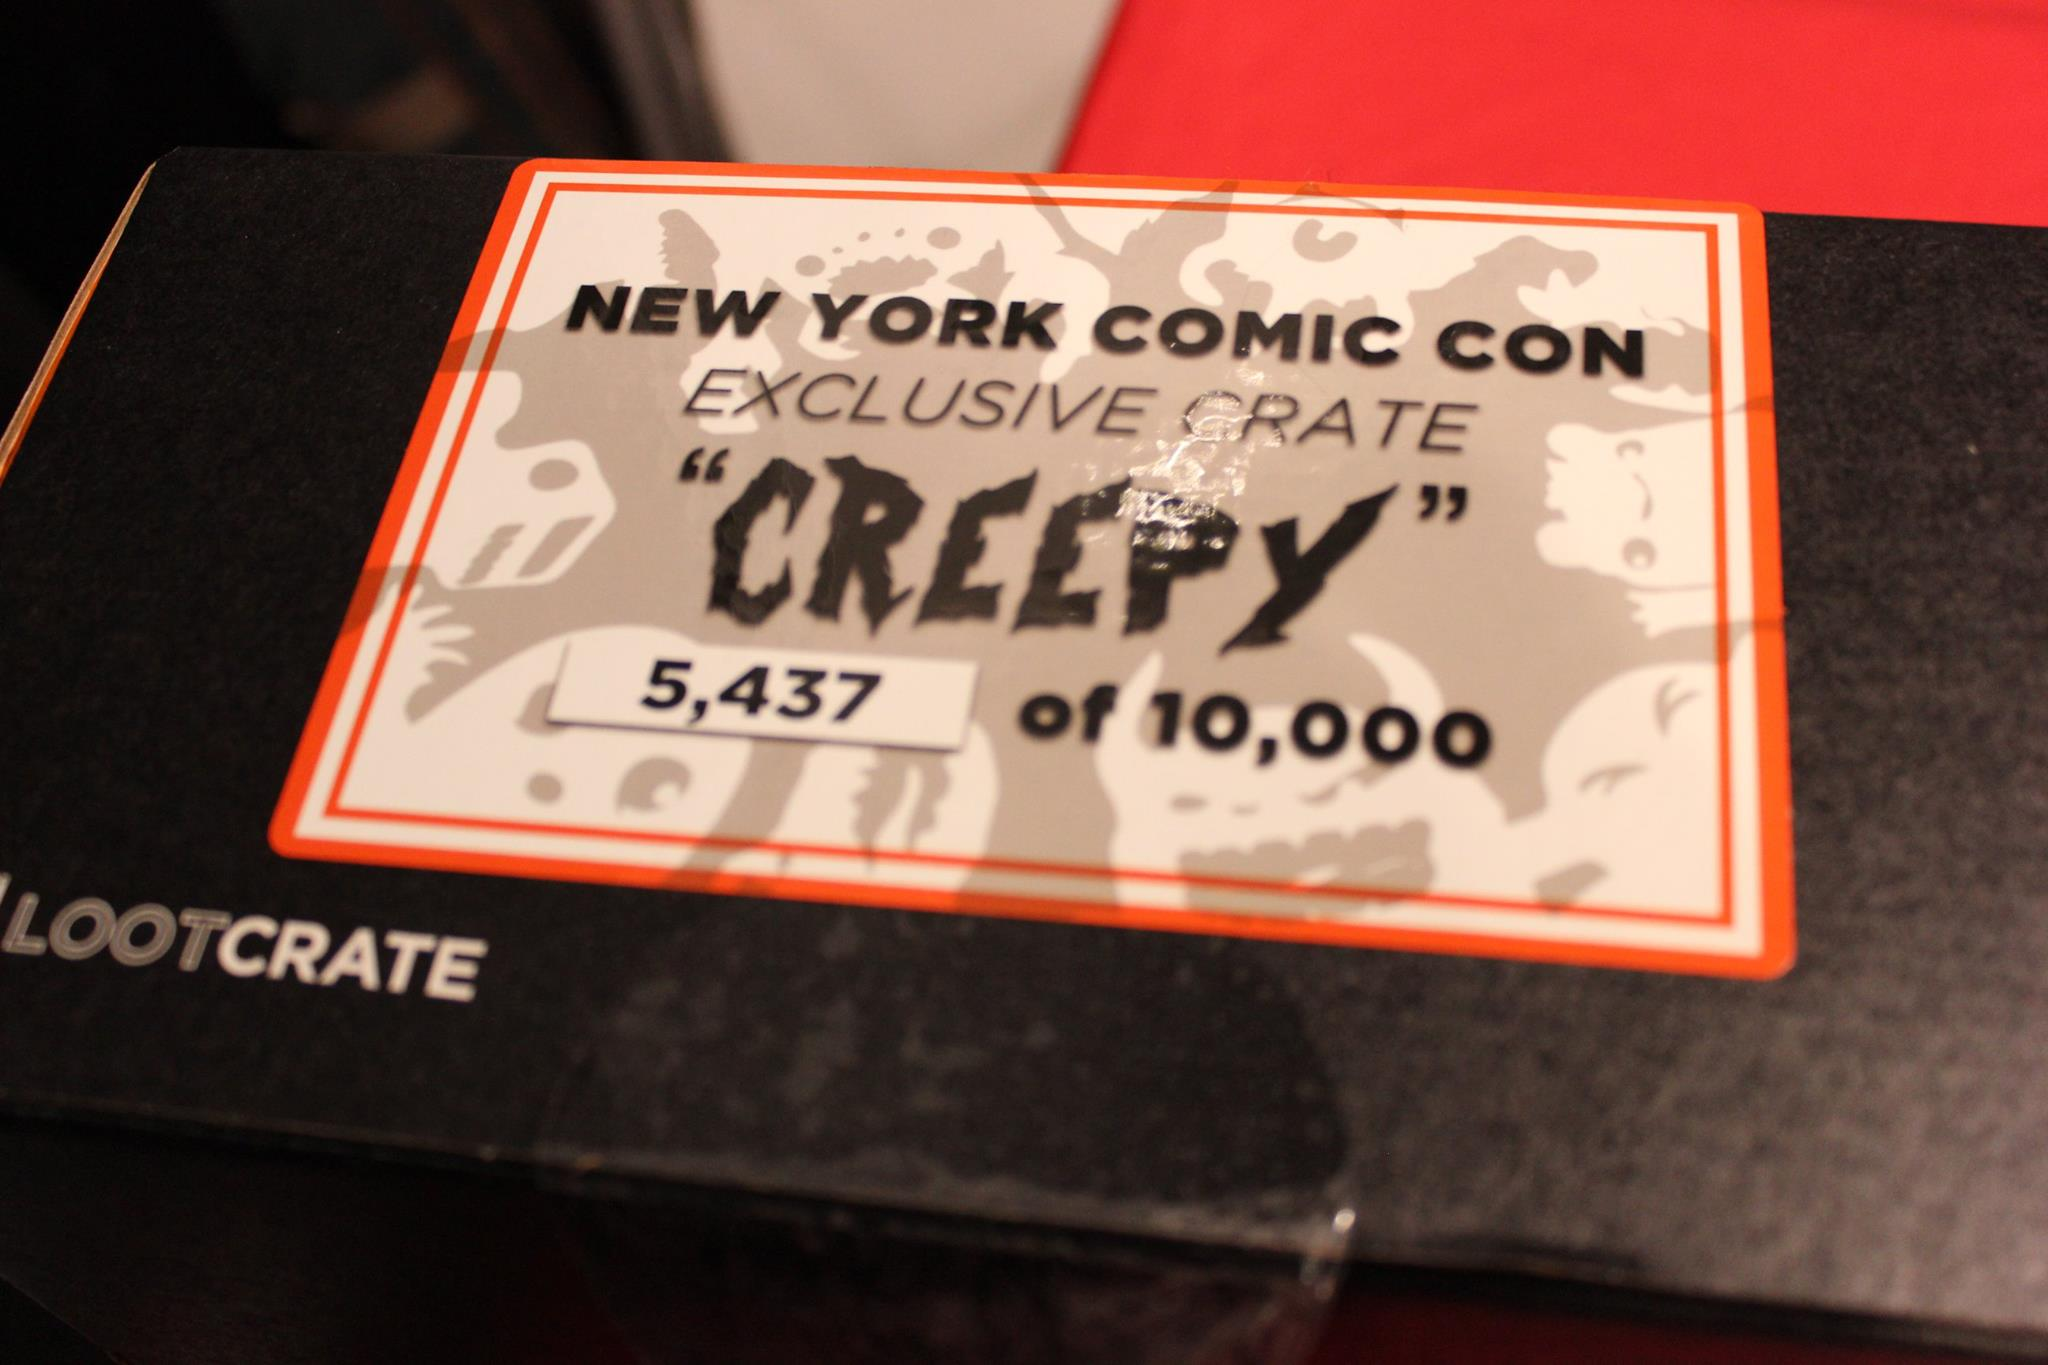 LootCrate NYCC 1